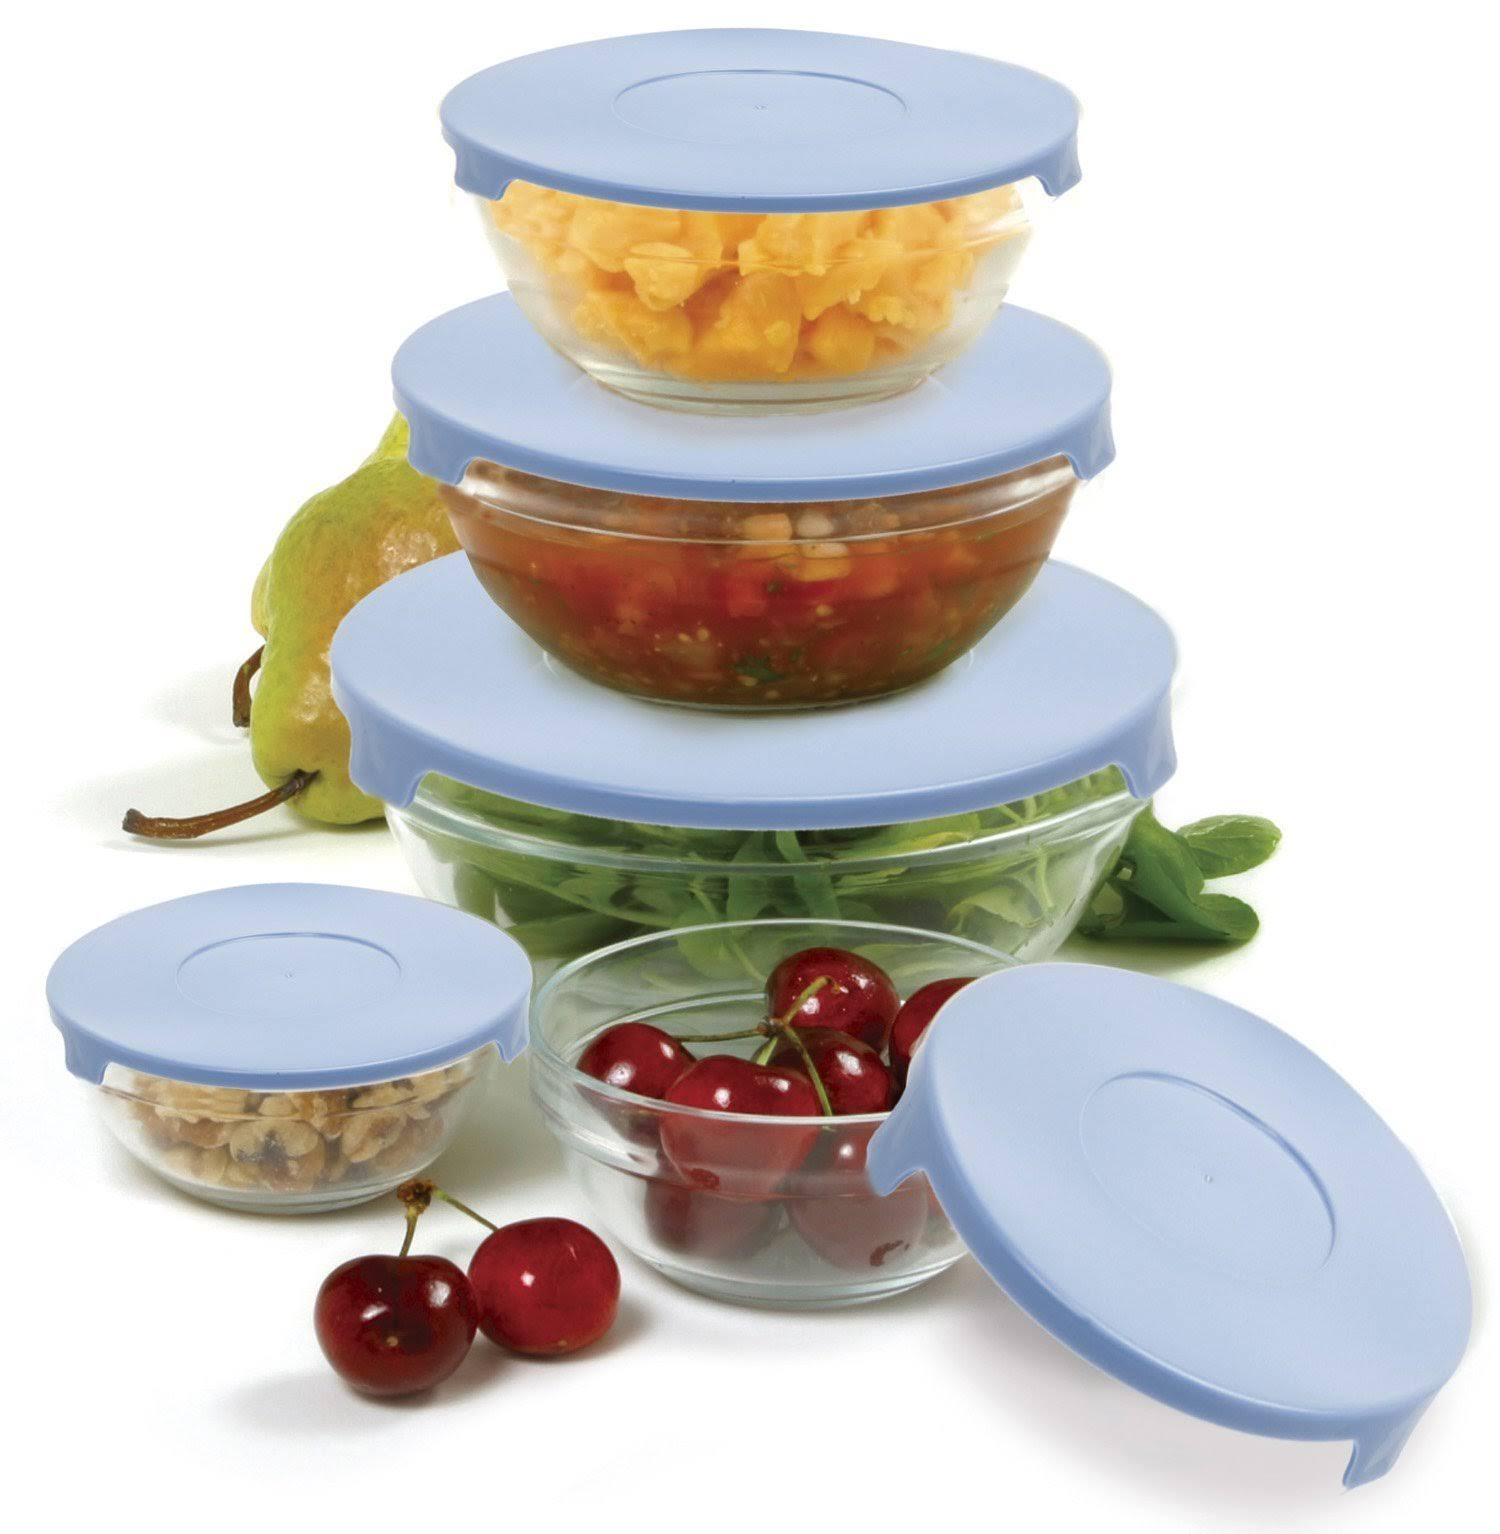 NorPro 10-Piece Nesting Mixing/Storage Bowl & Lid Set, Assorted